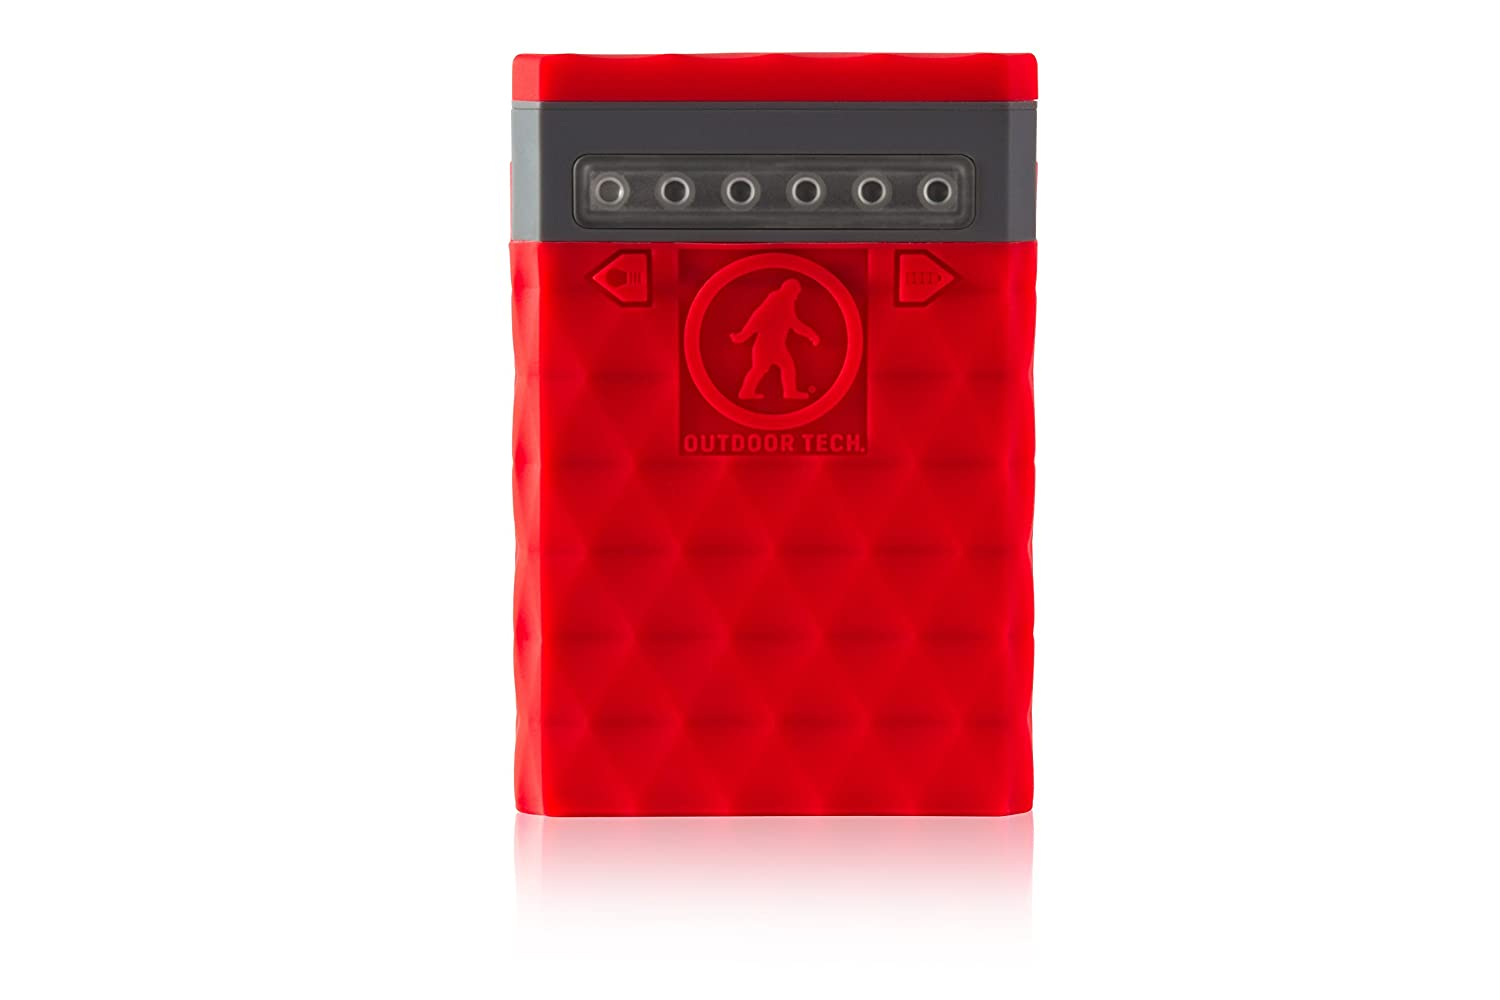 Outdoor Tech OT2650 Kodiak Plus 2.0 - 10, 000 mAh 2.4 AMP Ruggedized Waterproof Portable Charger/External Battery (Red) Outdoor Tech - CA OT2650-R